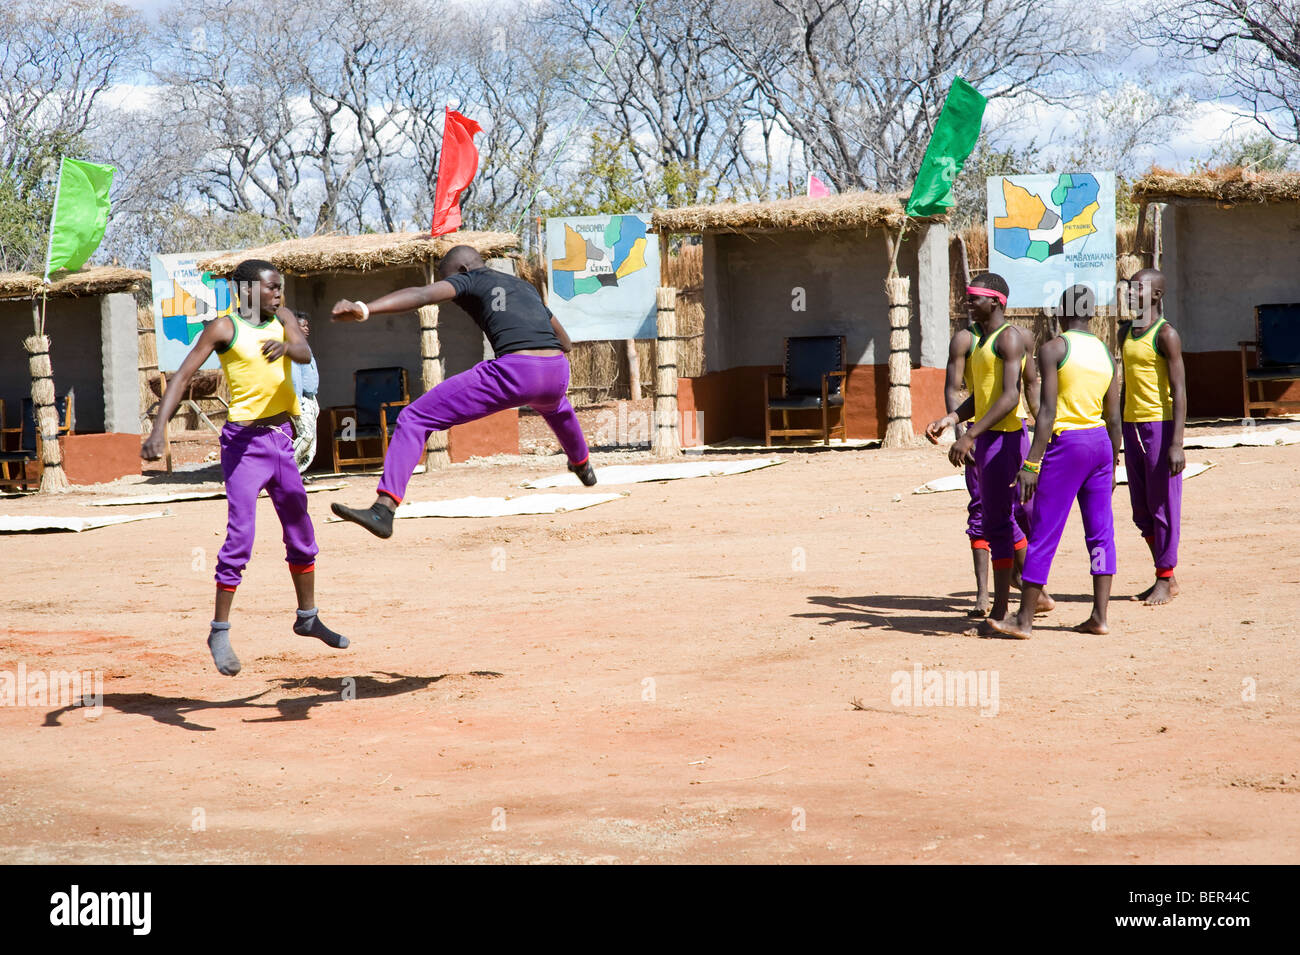 Festival entertainers at the Lwiindi celebration of Chief Mukuni in Zambia close to Livingstone. - Stock Image